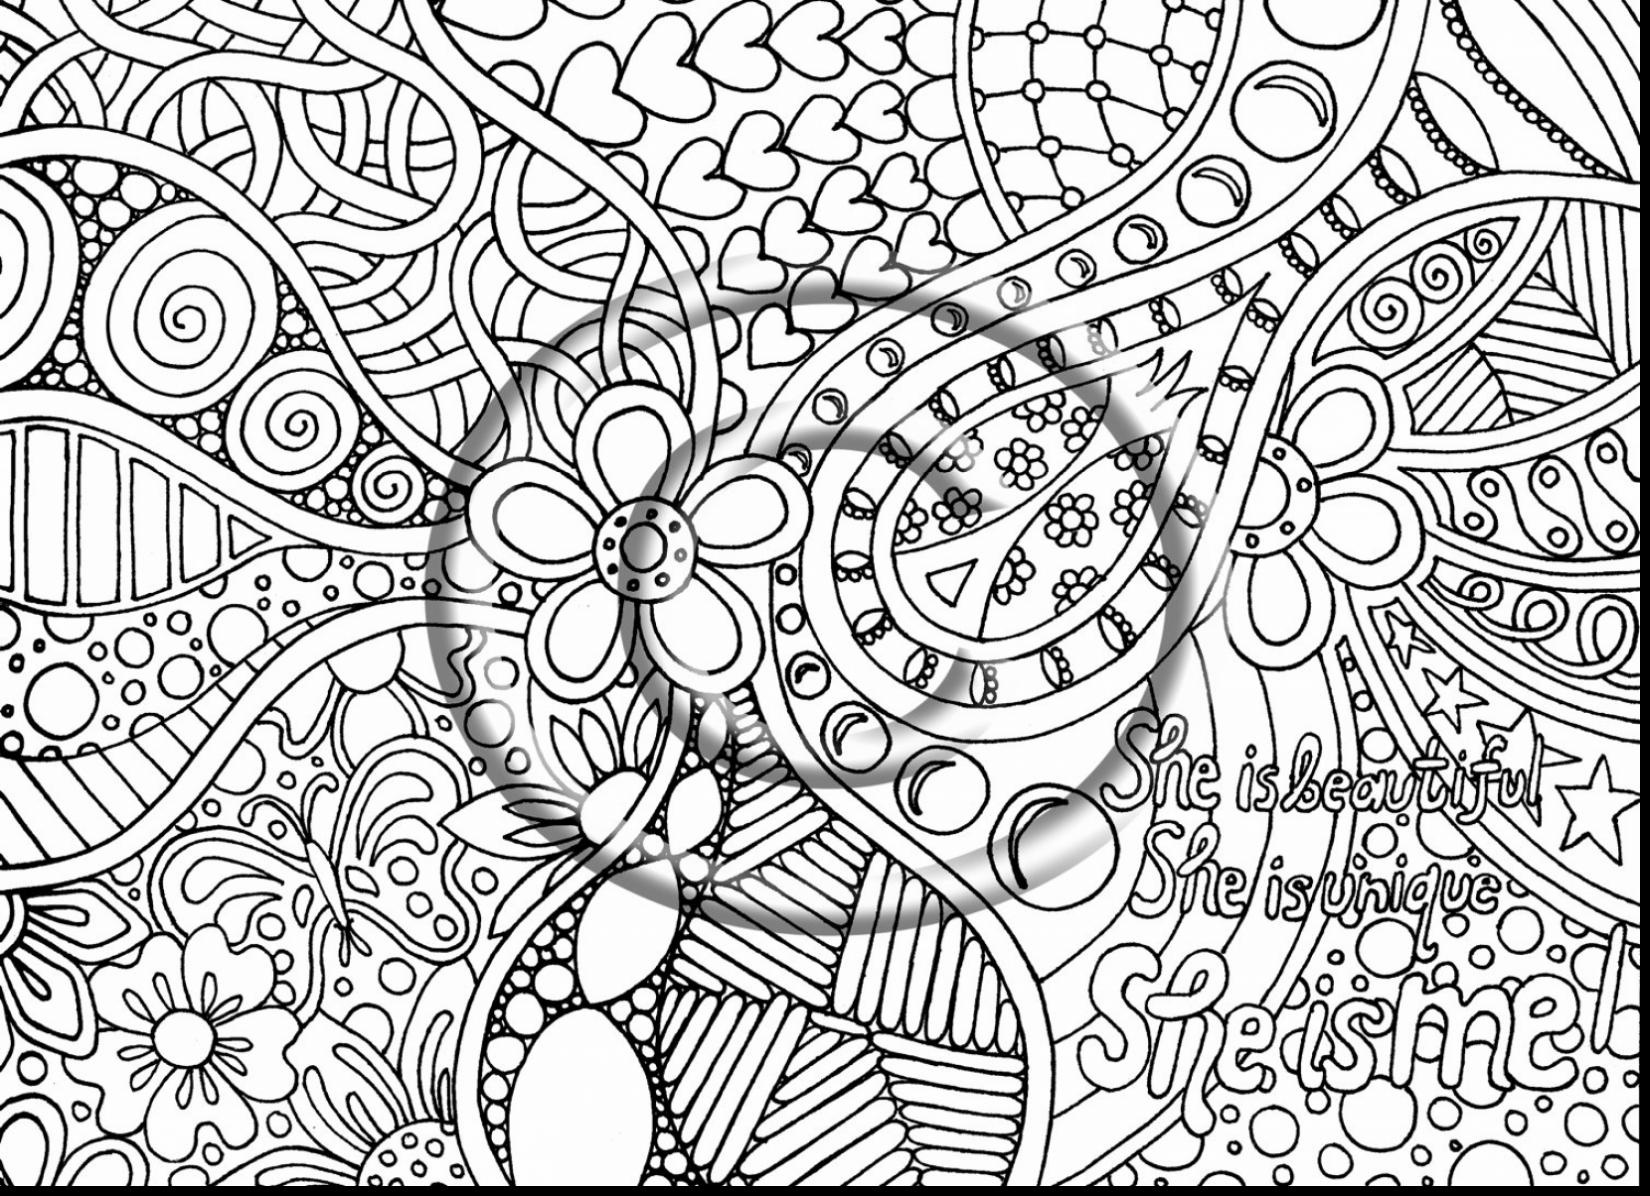 Trippy Coloring Pages For Adults At Getdrawings Com Free